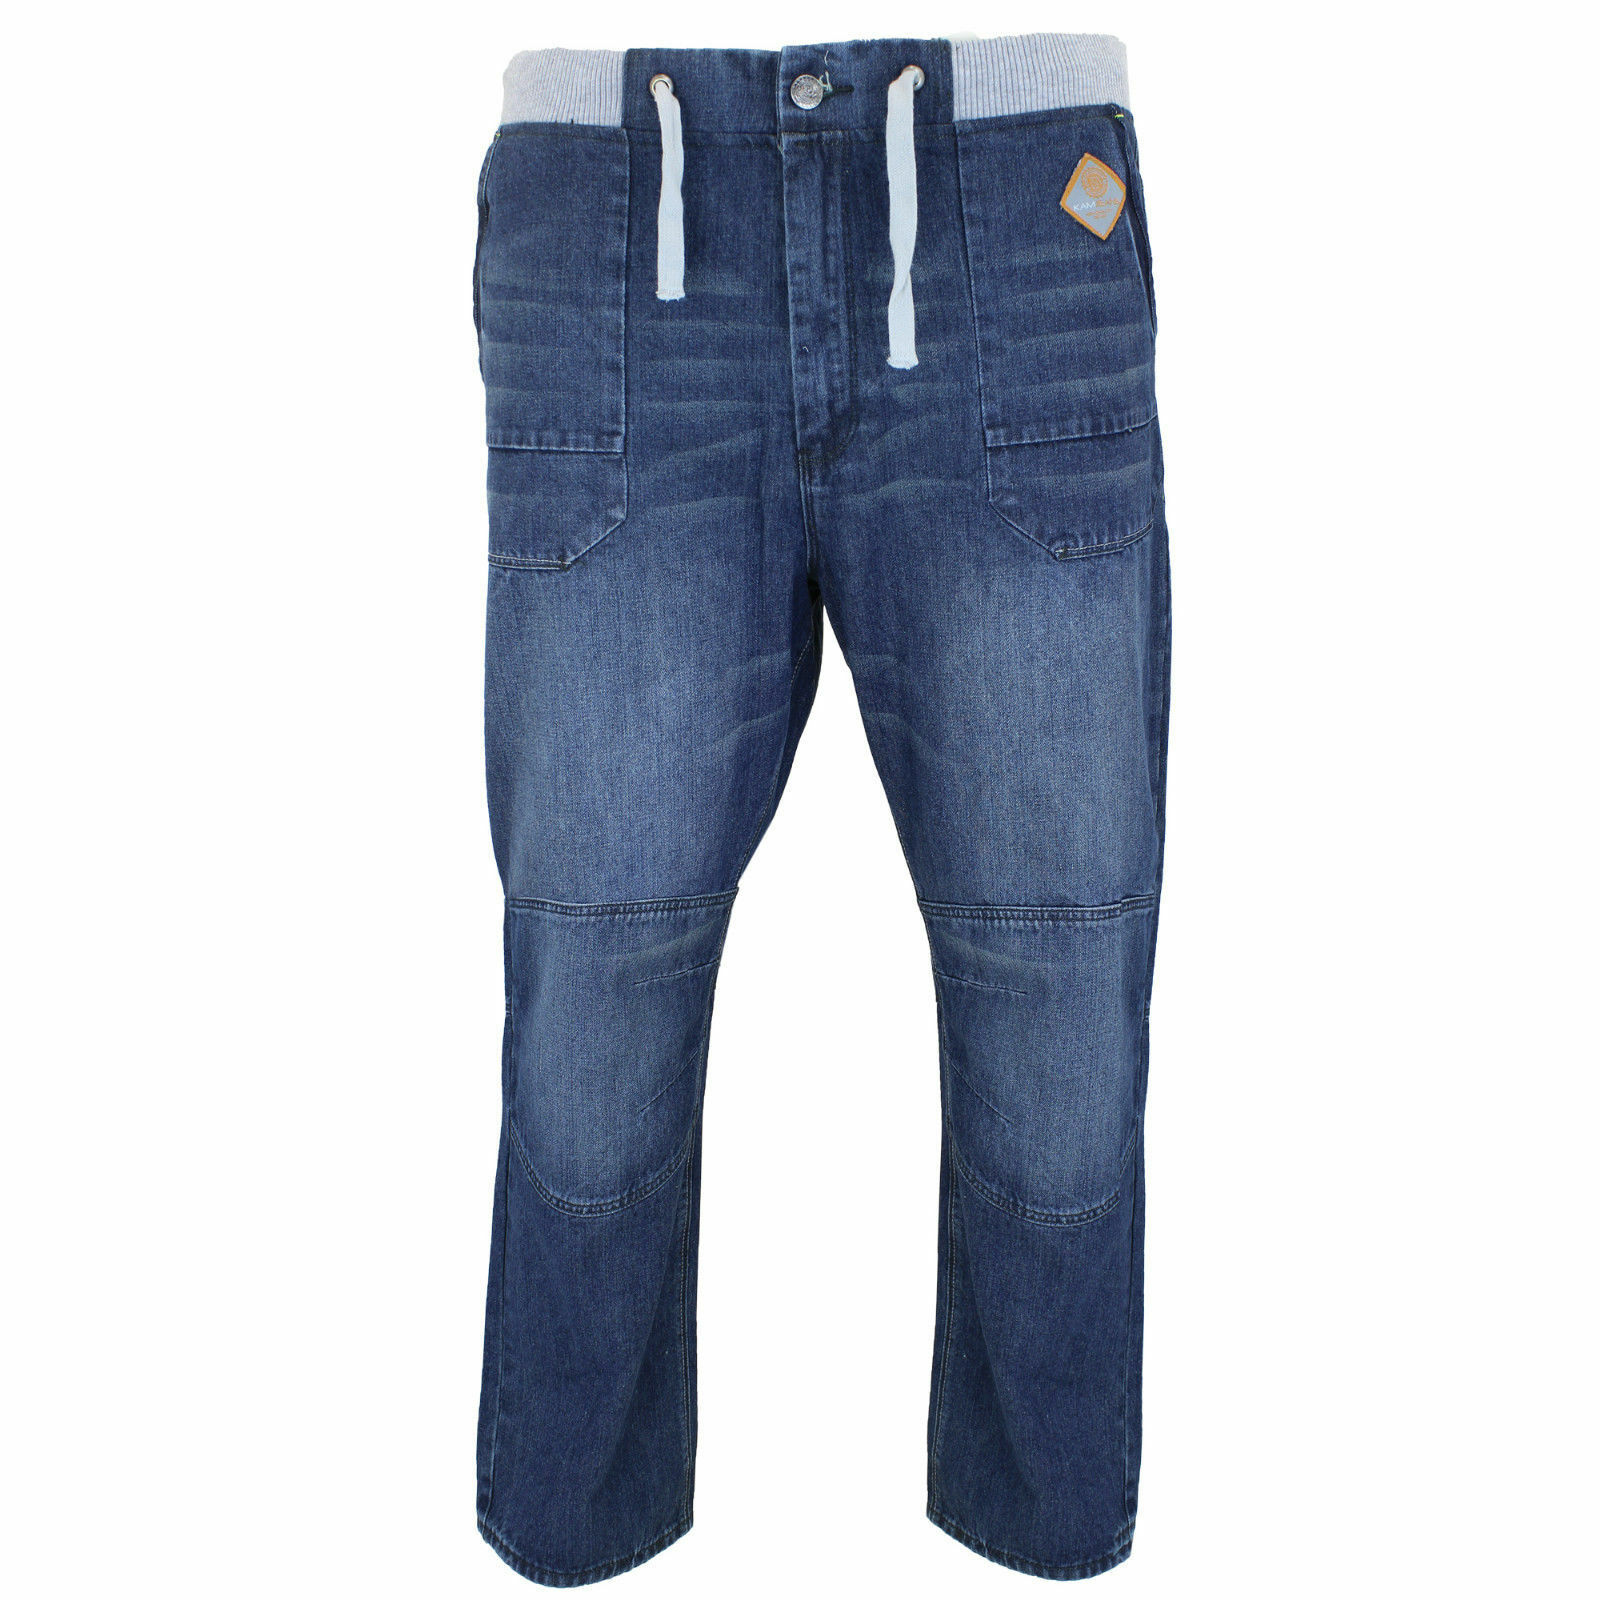 New Mens 40-60 Branded Delroy bluee Big king plus  Jeans Elasticated Relax fit